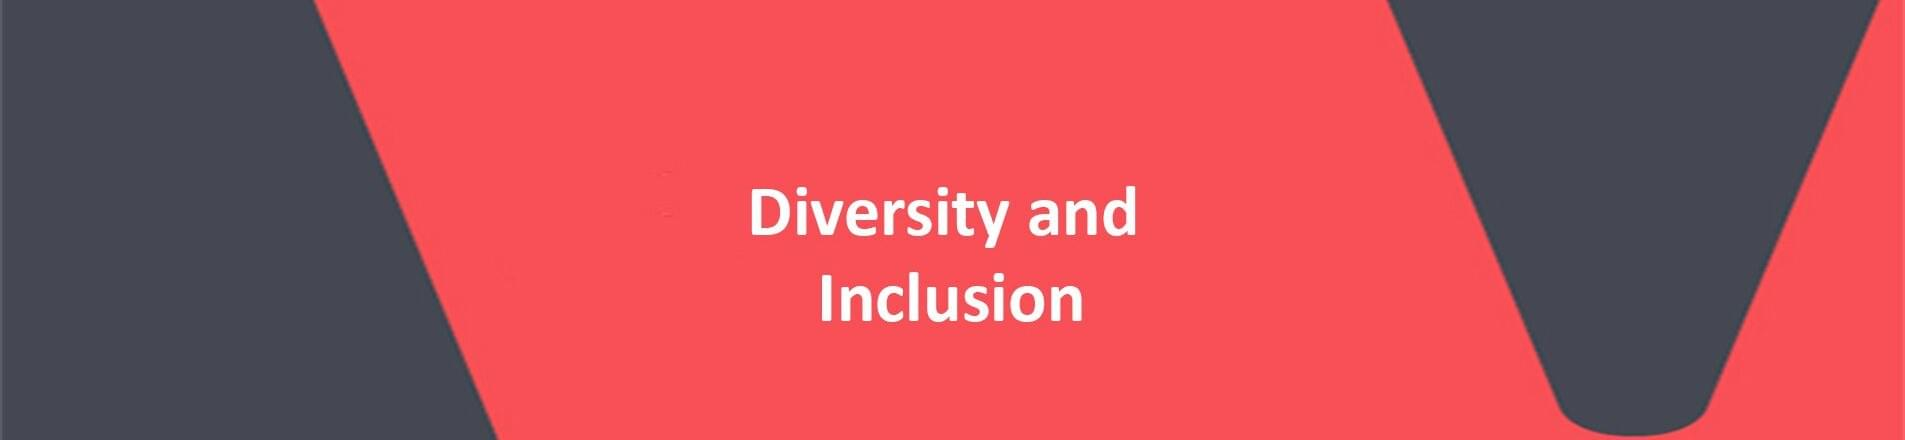 Red background with white text on top spelling Diversity and Inclusion